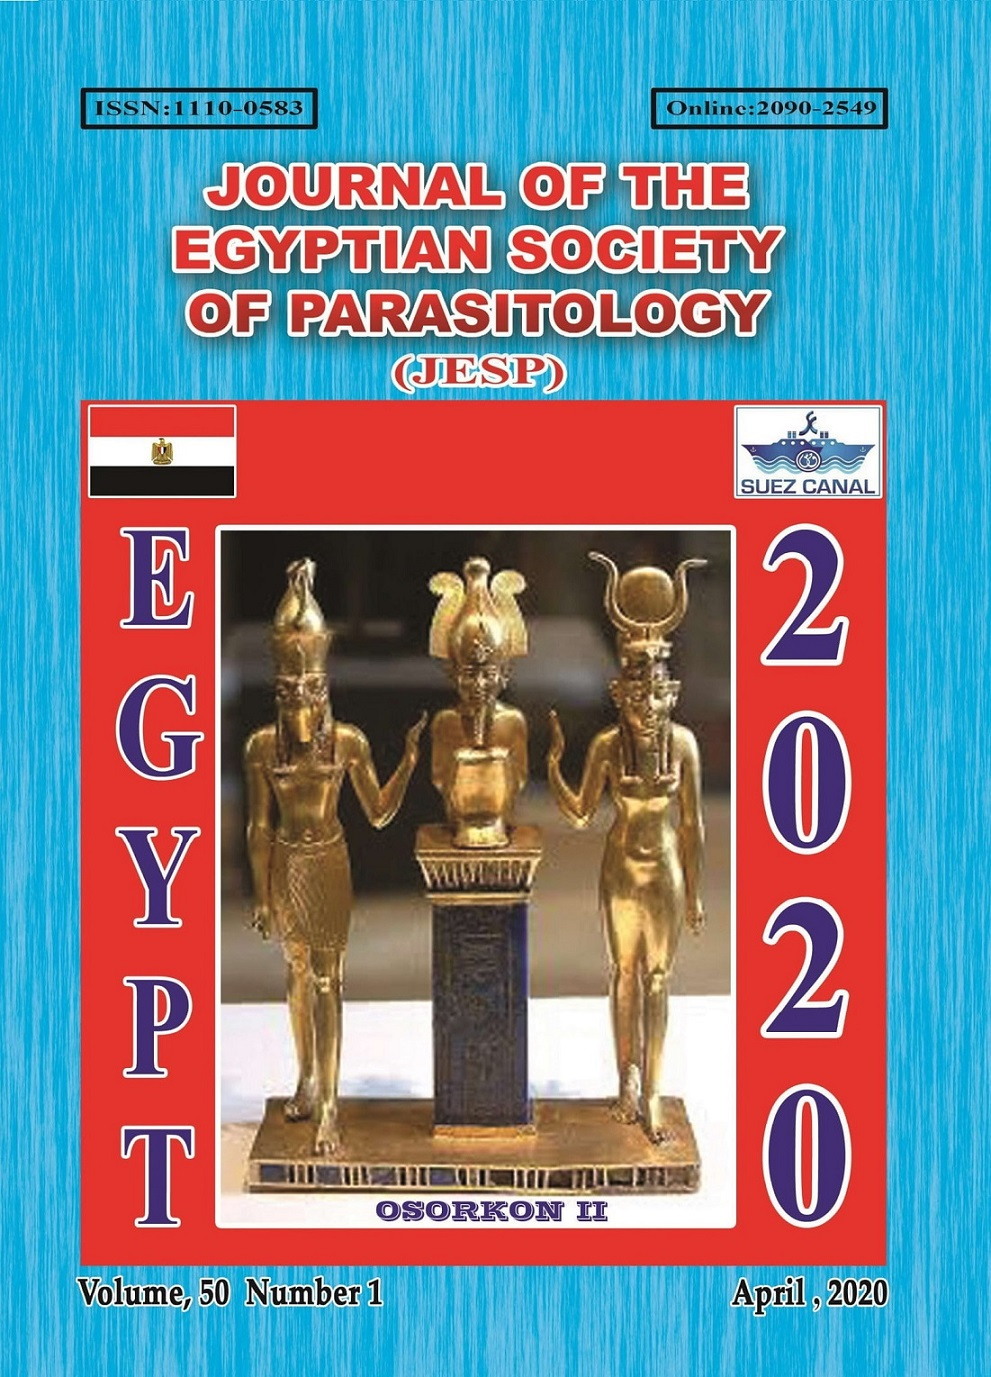 Journal of the Egyptian Society of Parasitology